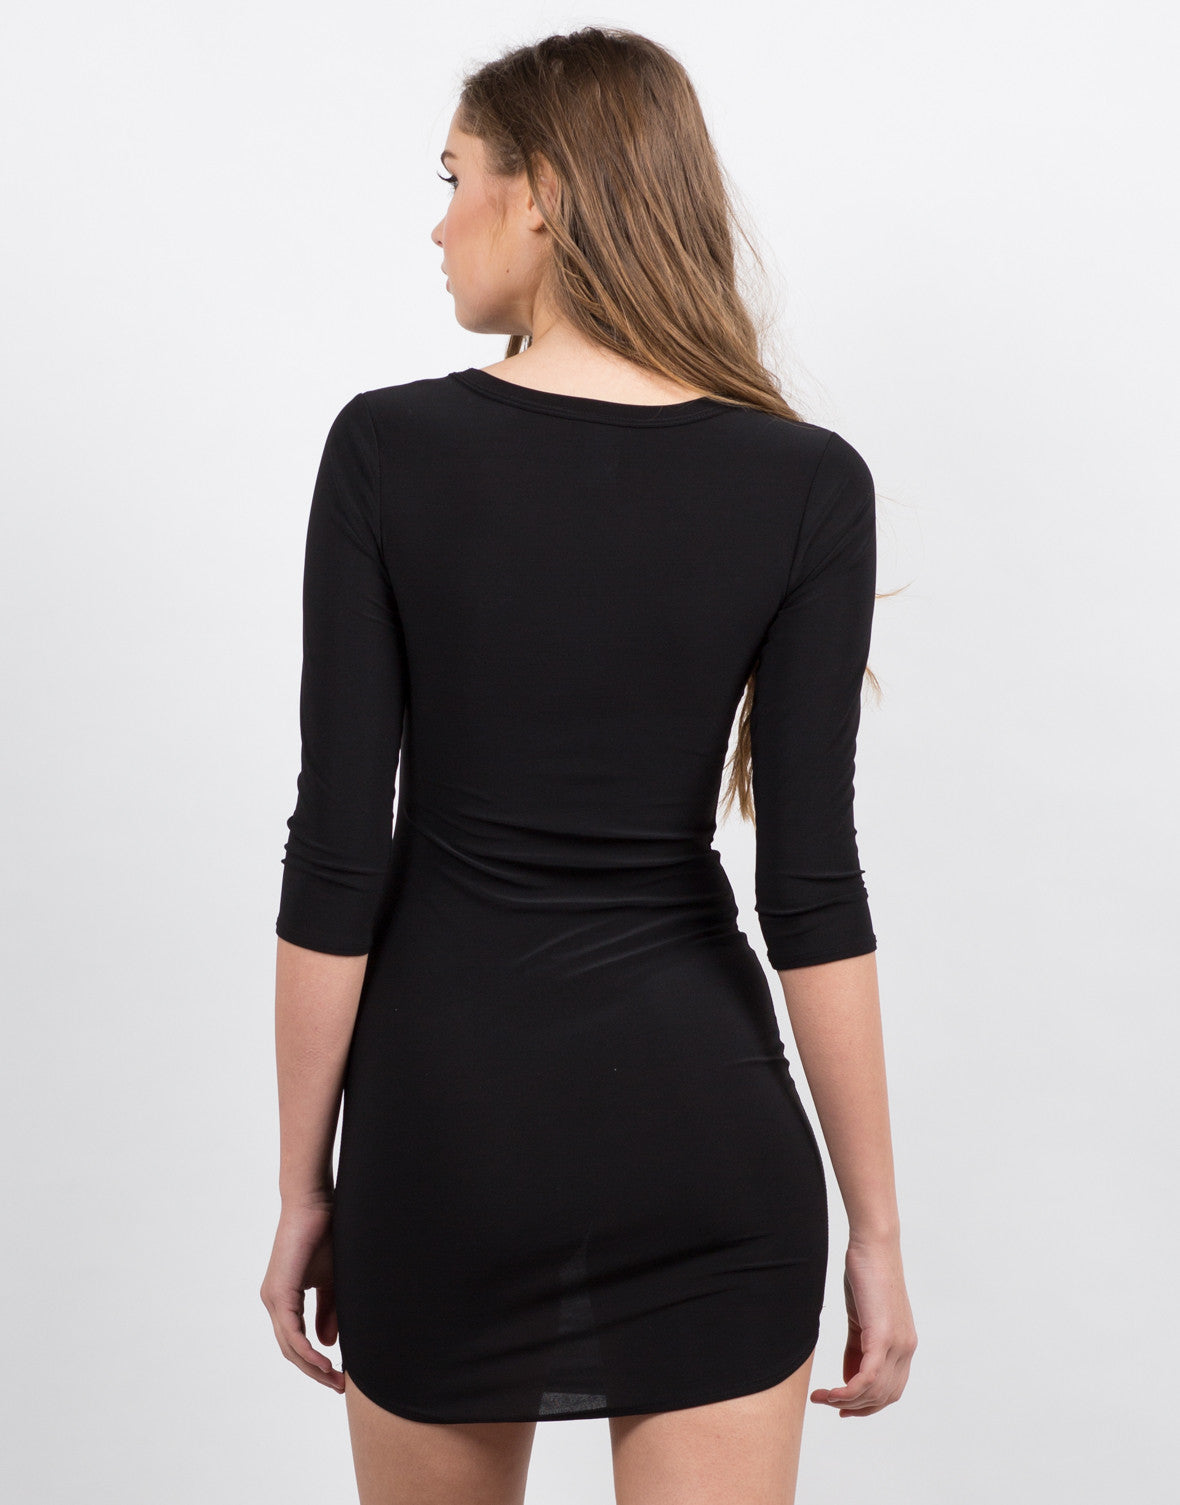 Back View of 3/4 Sleeve Lace Up Dress